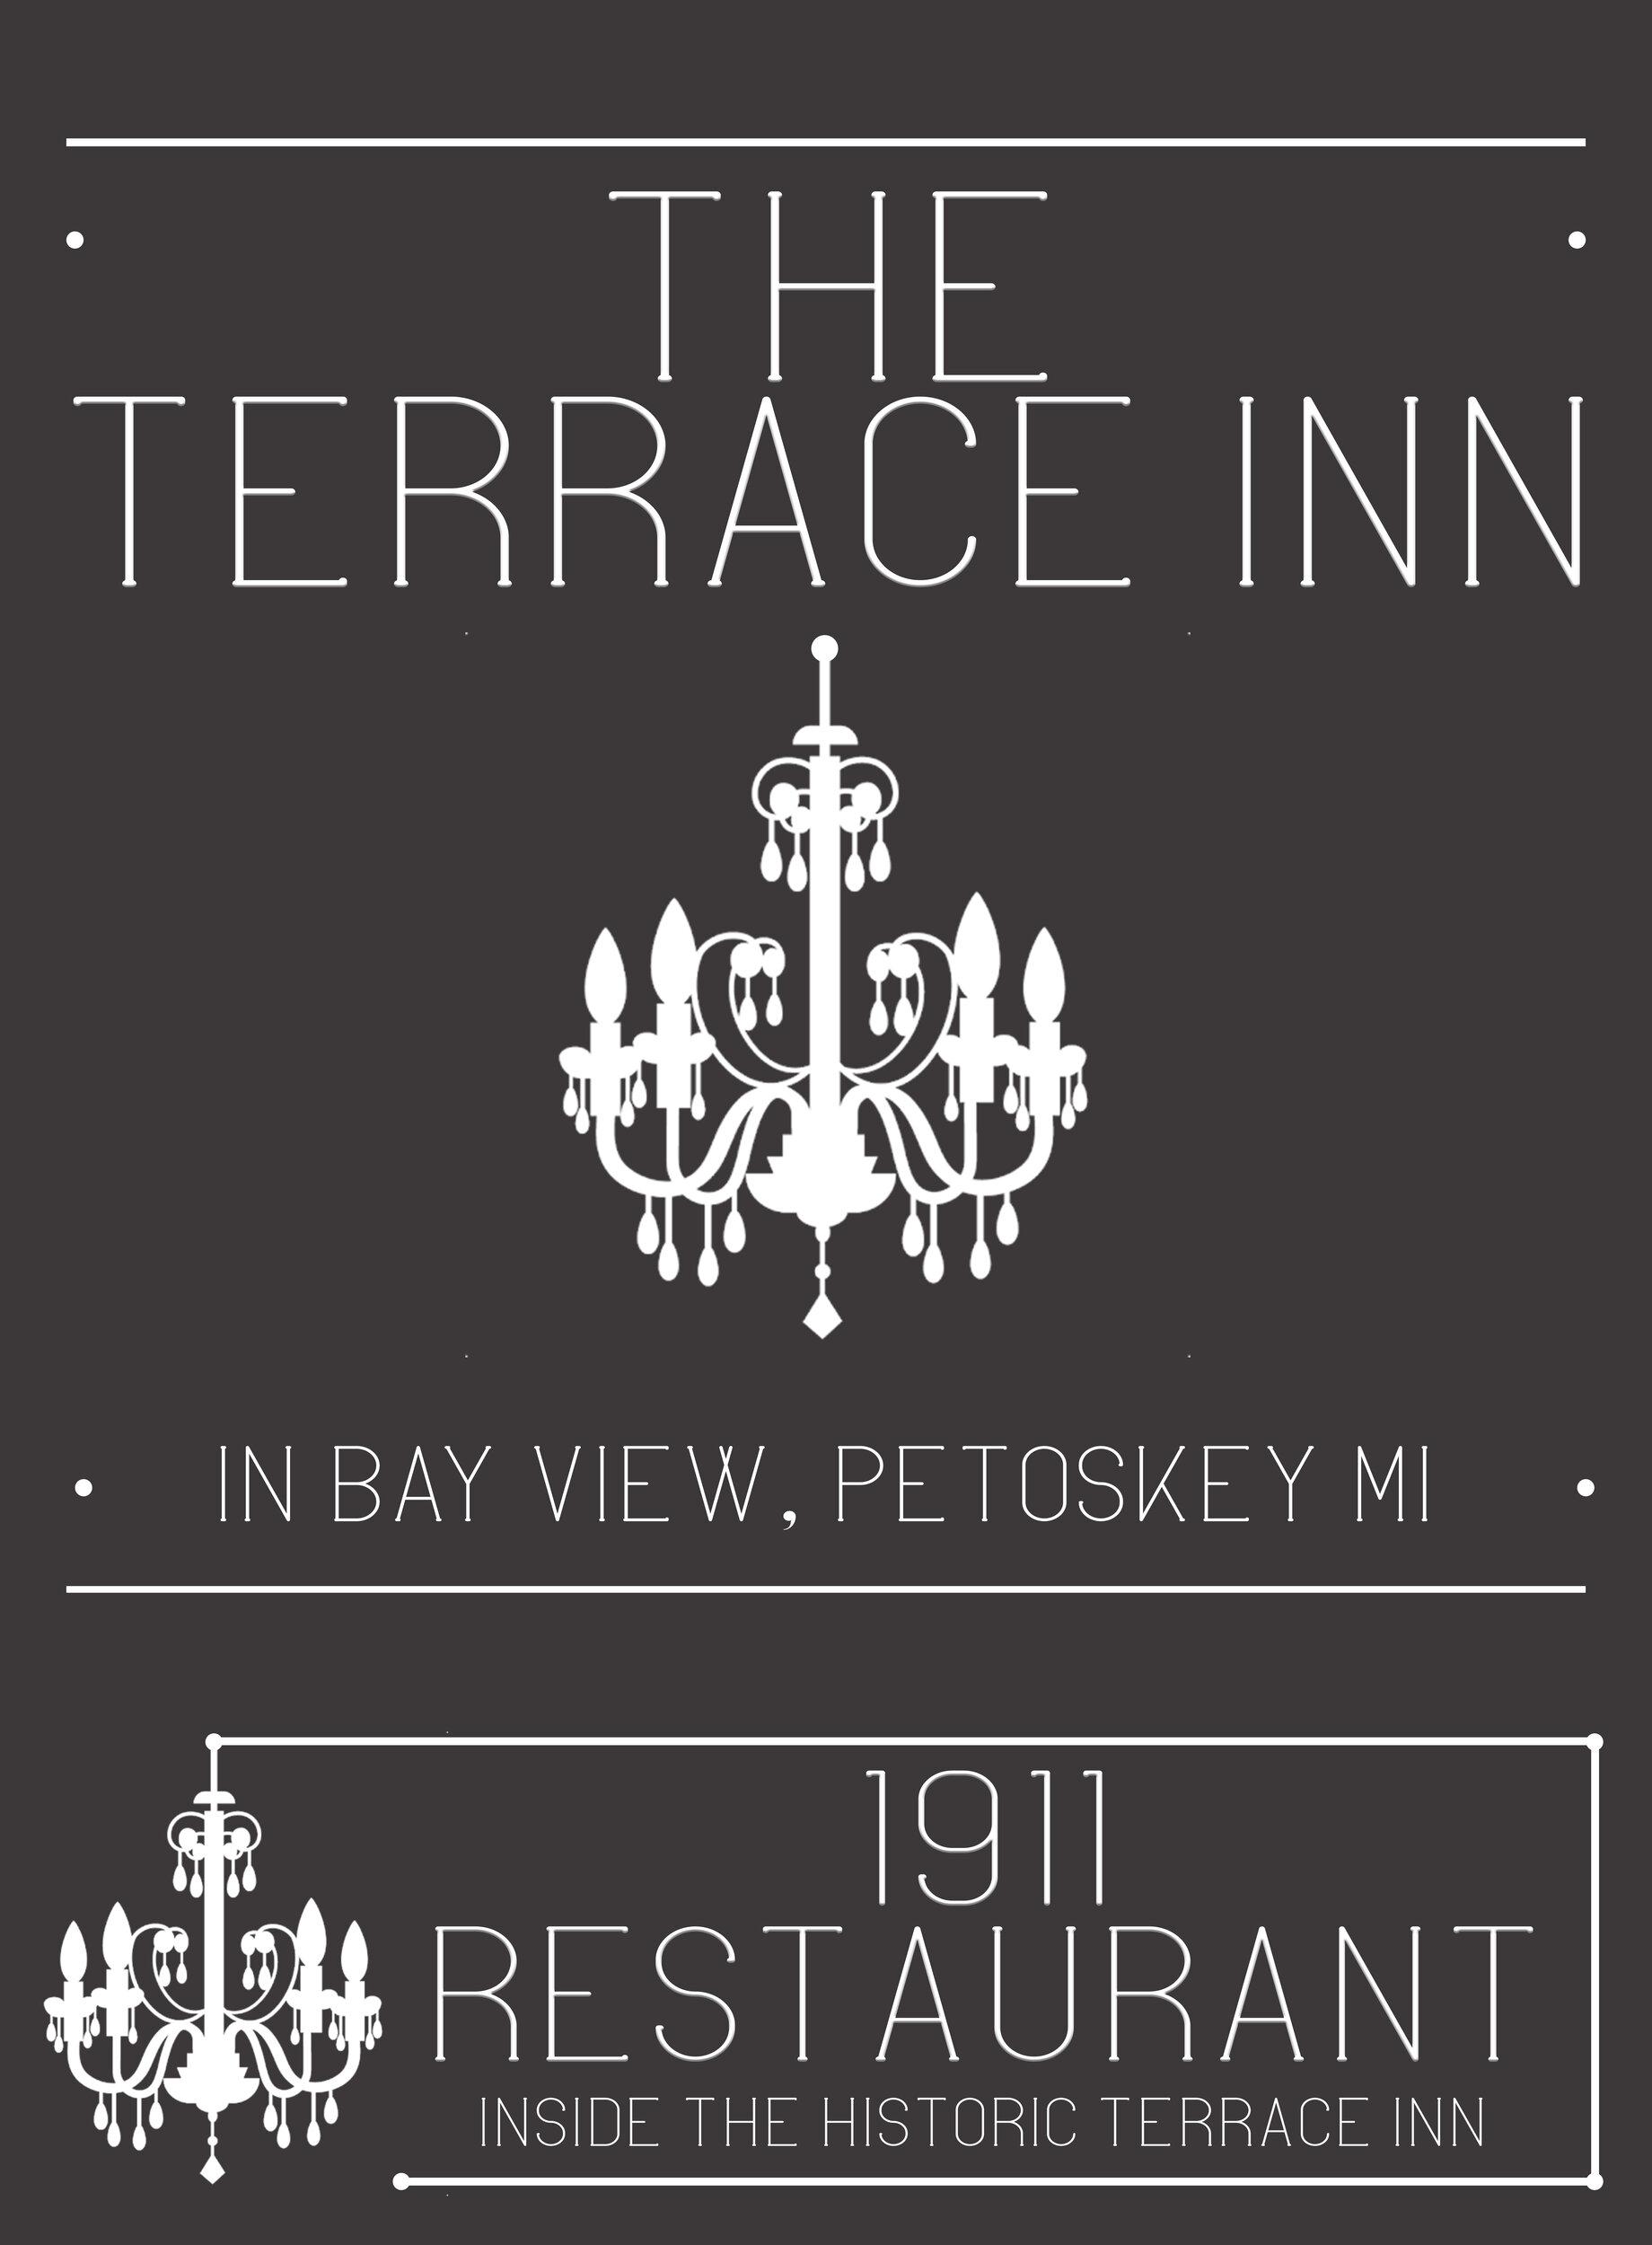 The Terrace Inn and 1911 Restaurant